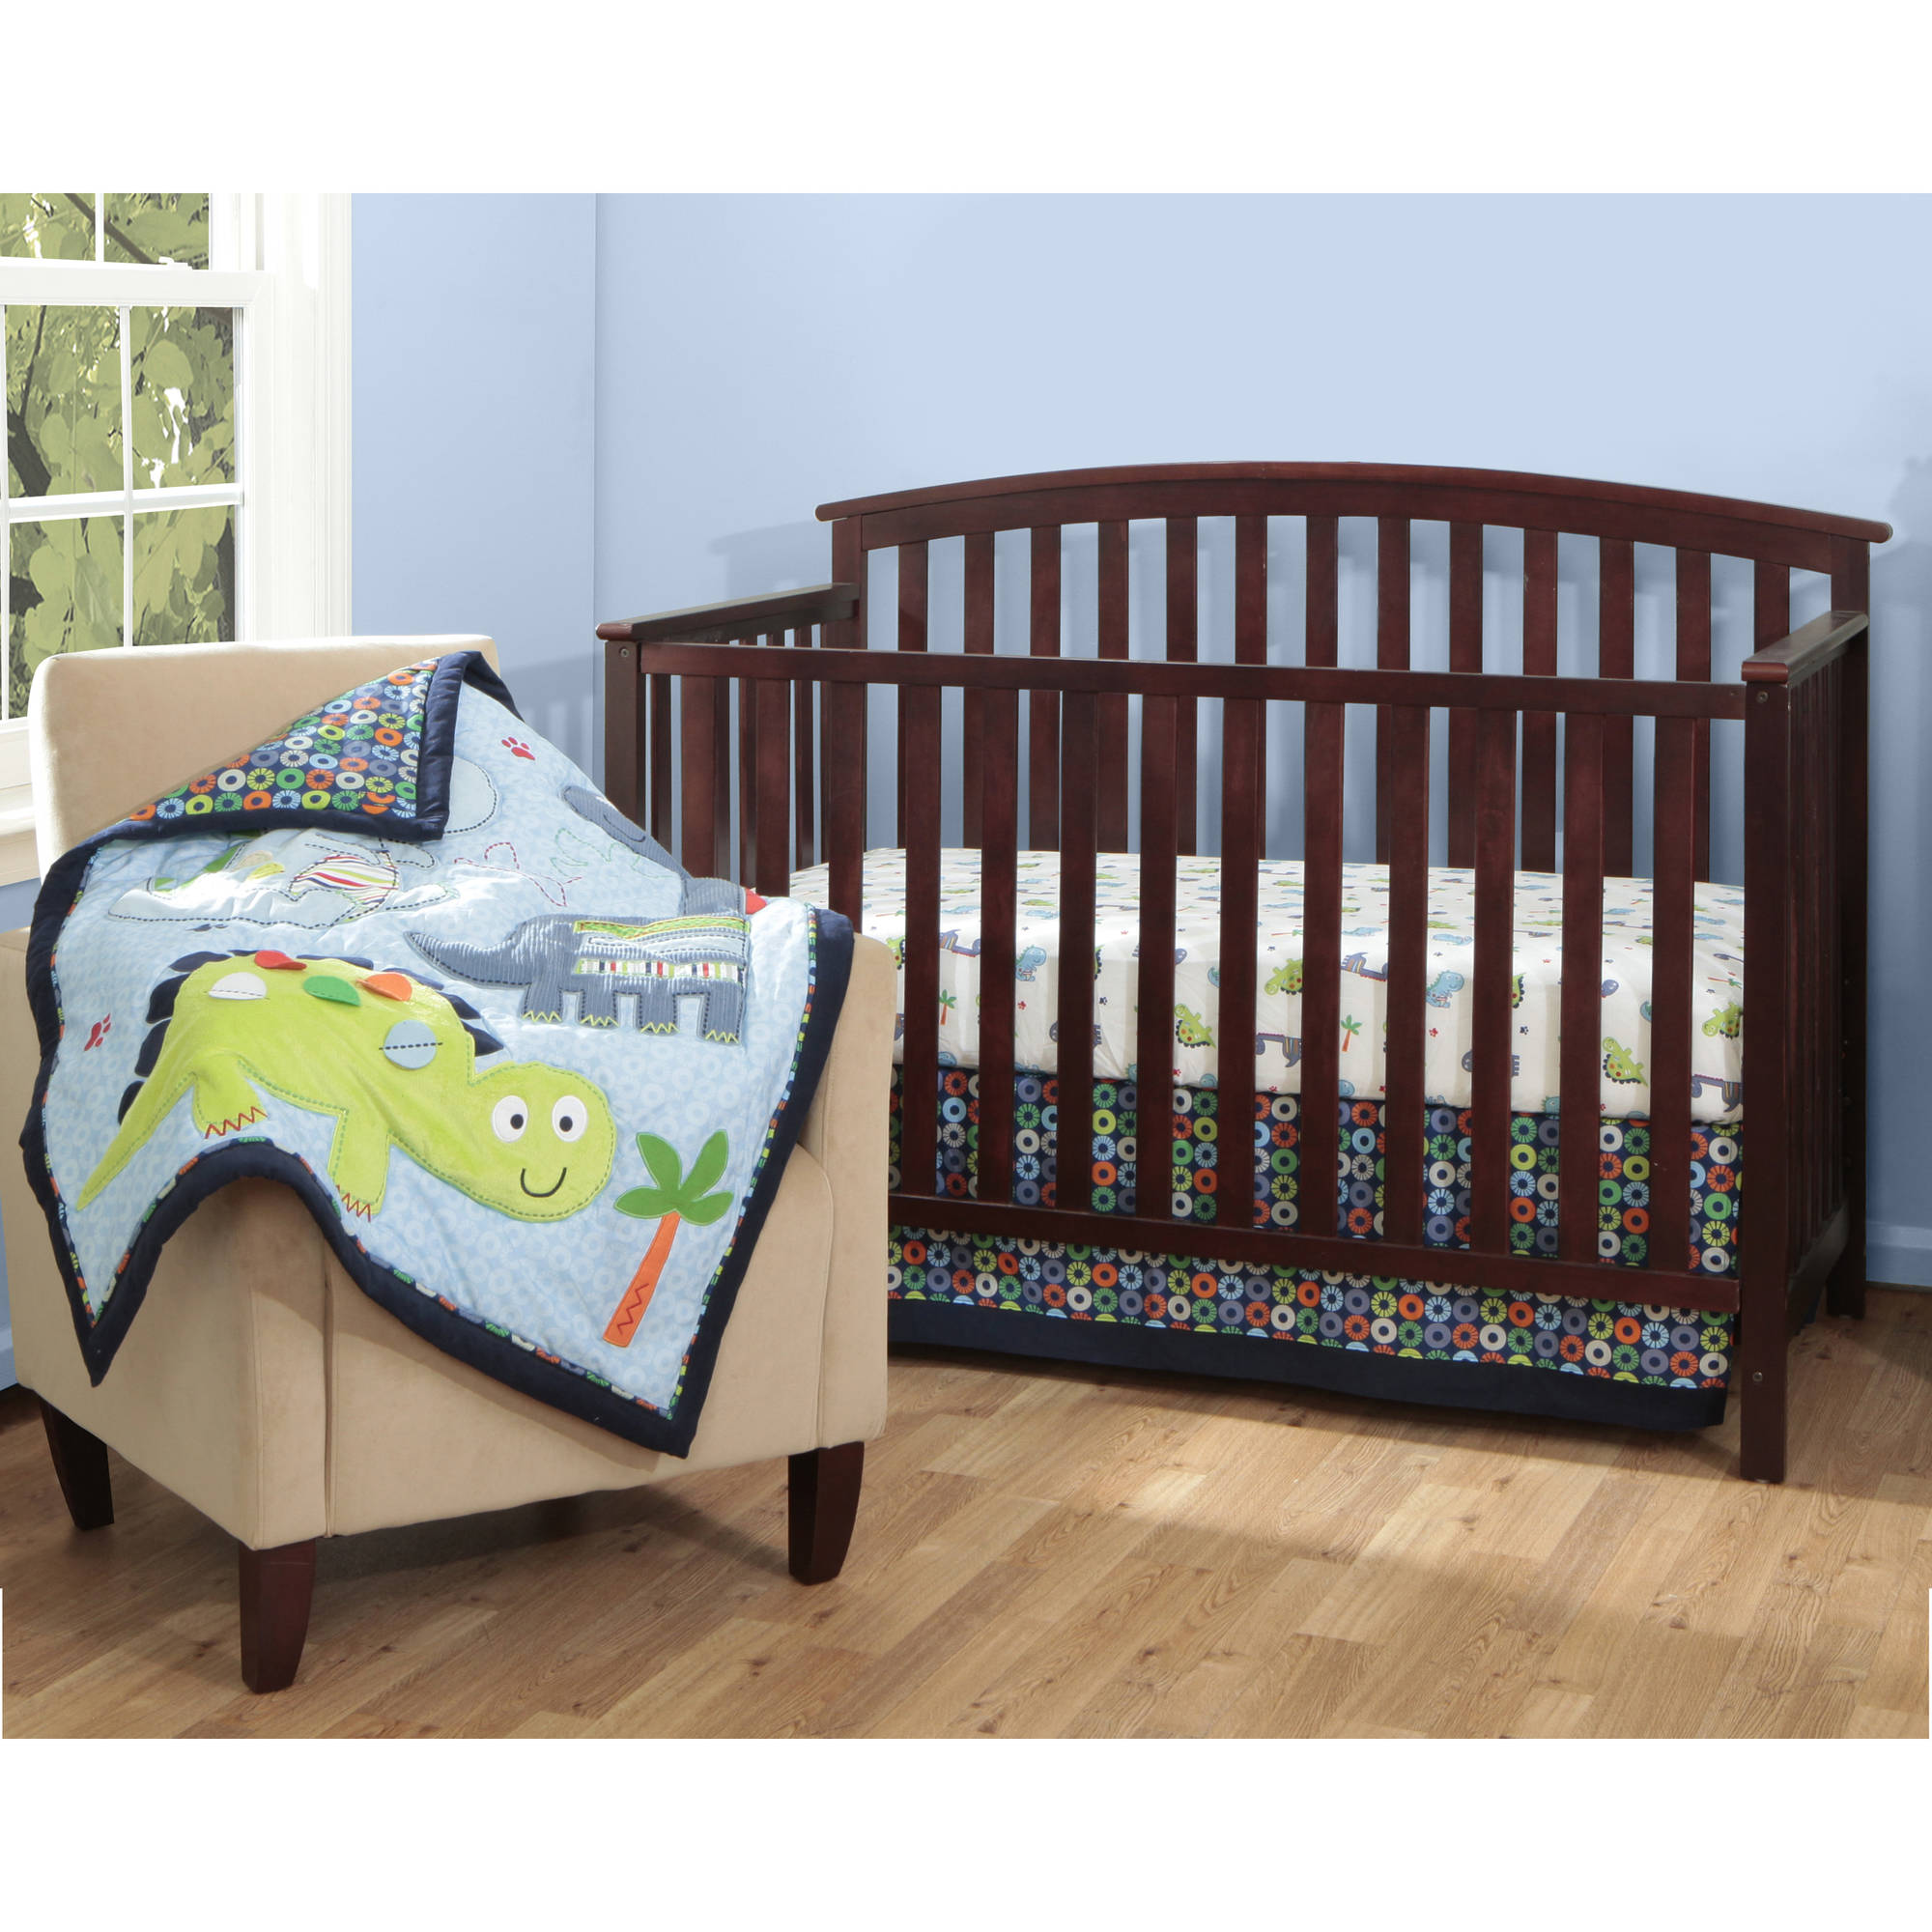 Bananafish Little Dino 3 Piece Crib Bedding Set With BONUS Diaper Stacker